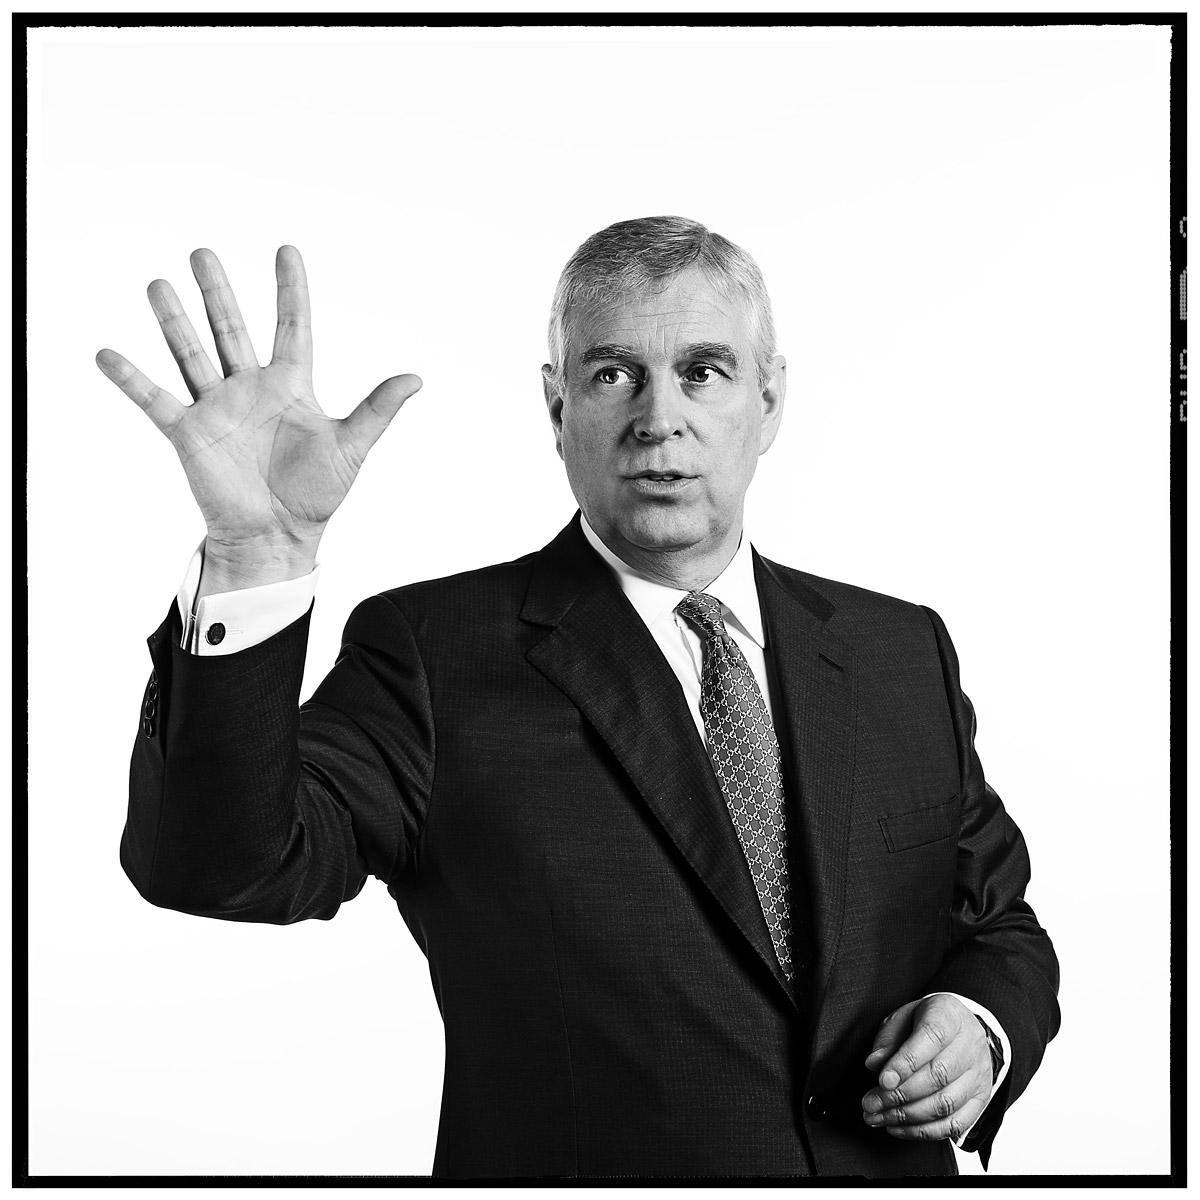 Photograph of HRH Prince Andrew by Contemporary portrait photographer Julian Hanford